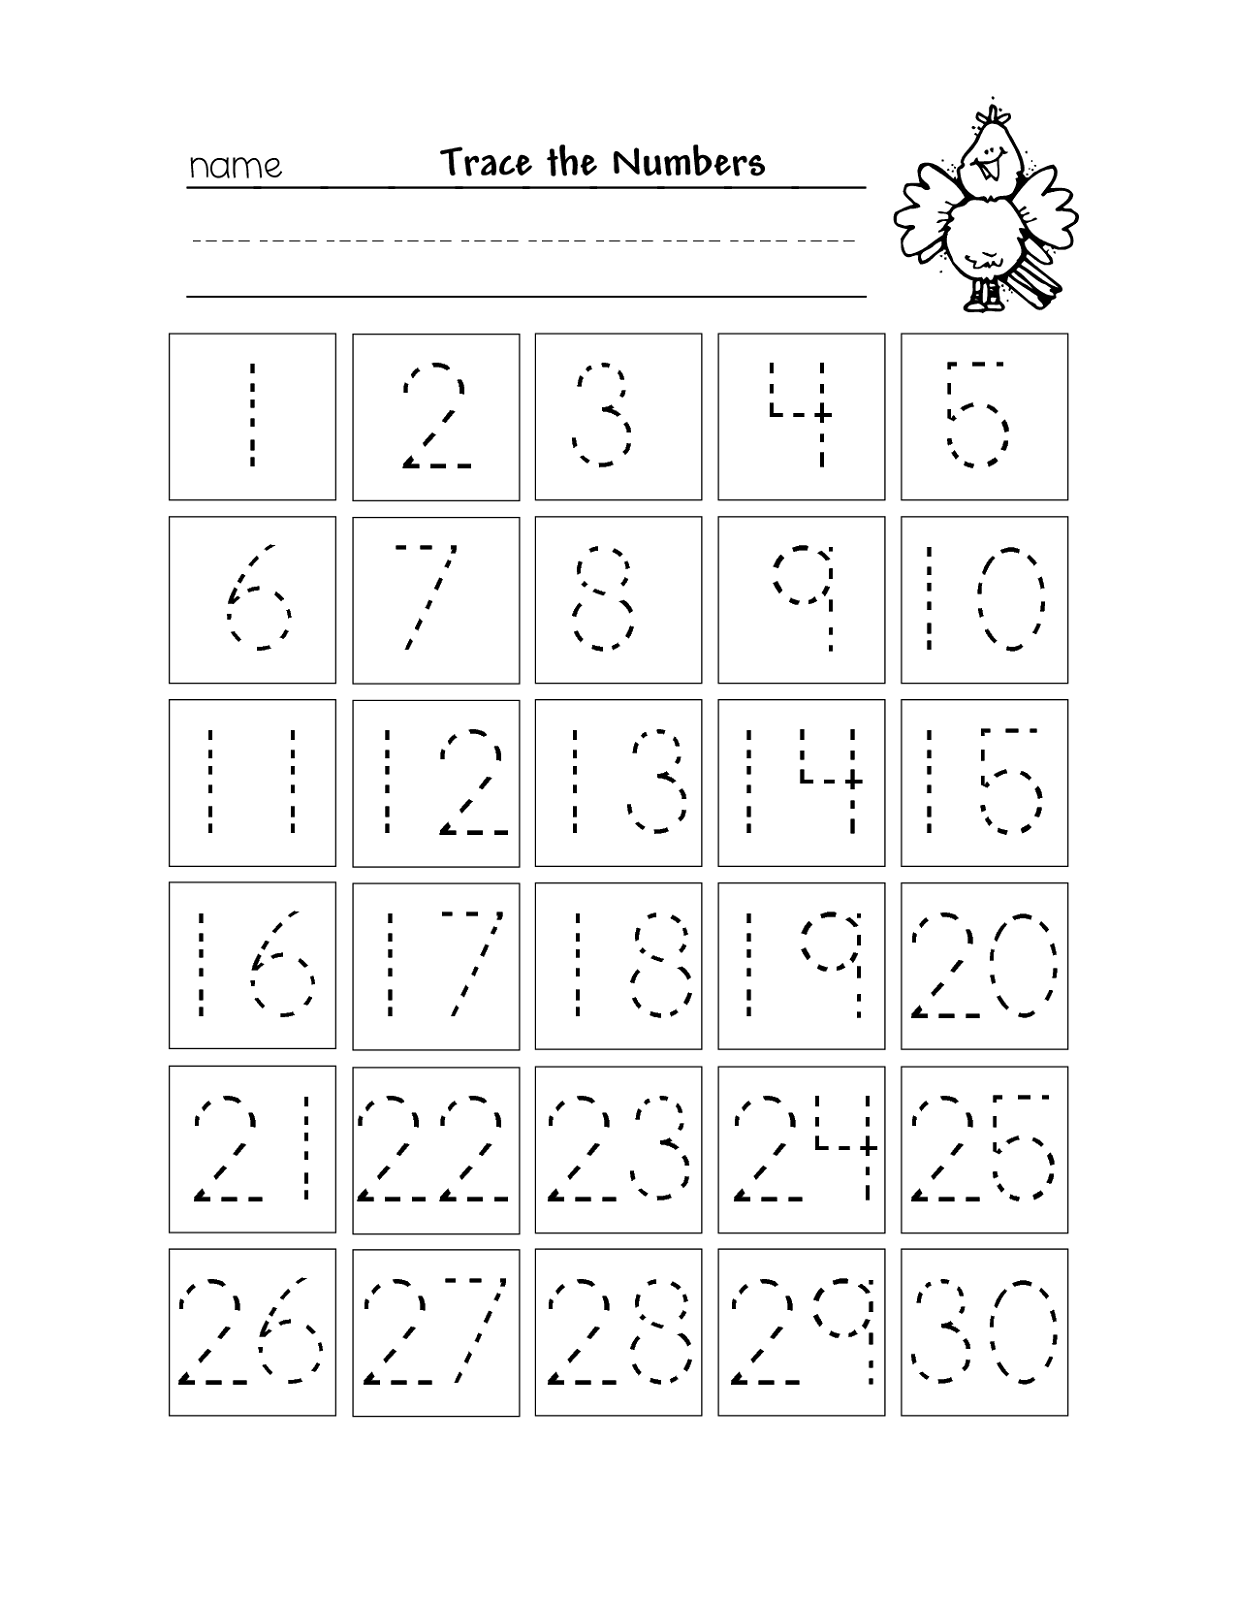 image relating to Printable Number Line 1-30 known as Free of charge Printable Variety Chart 1-30 Kinder Quantity tracing